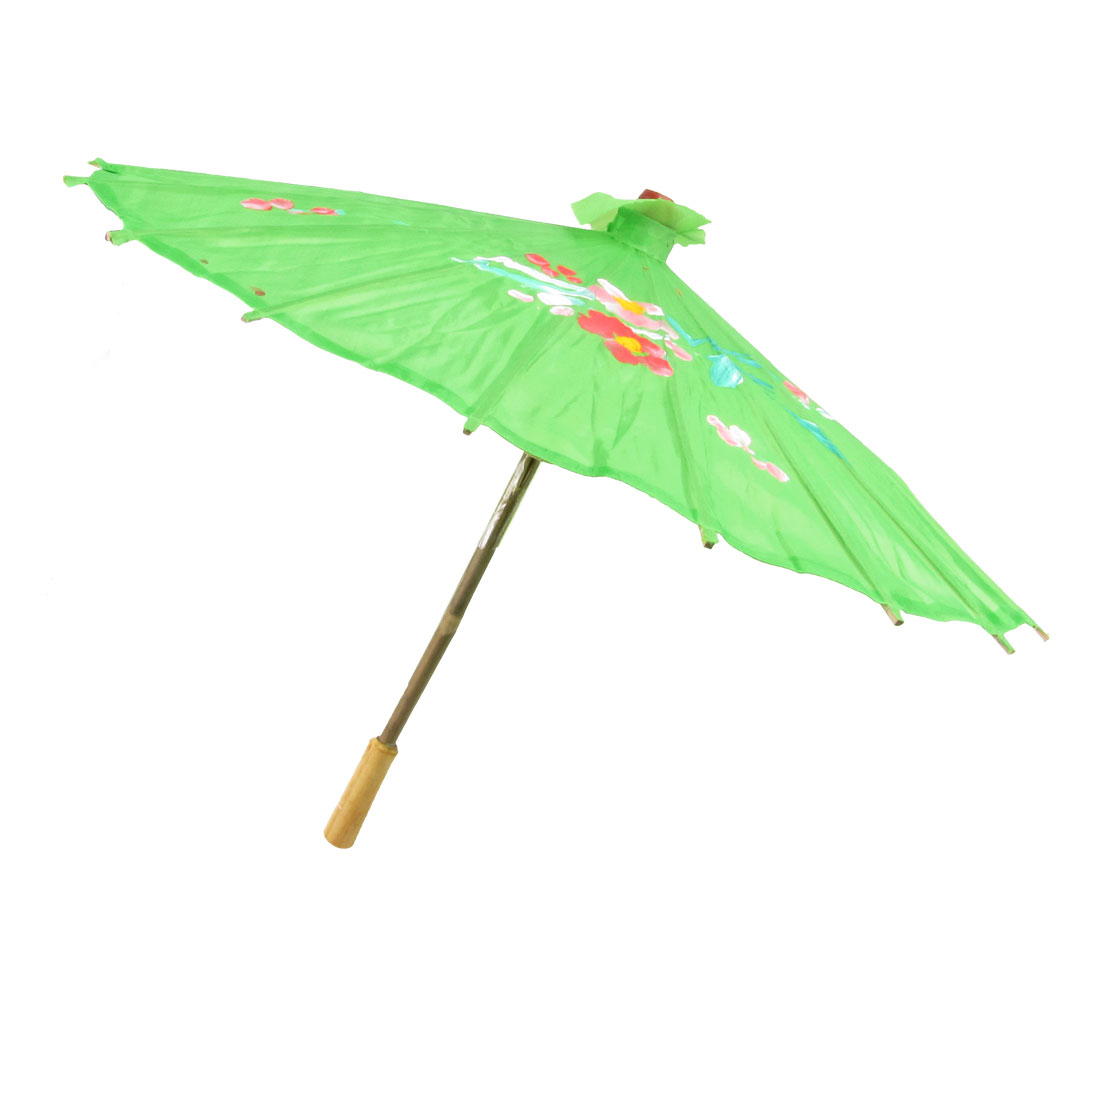 "Handy Flower Print 21"" Dia Foldable Japanese Chinese Umbrella Parasol Green"